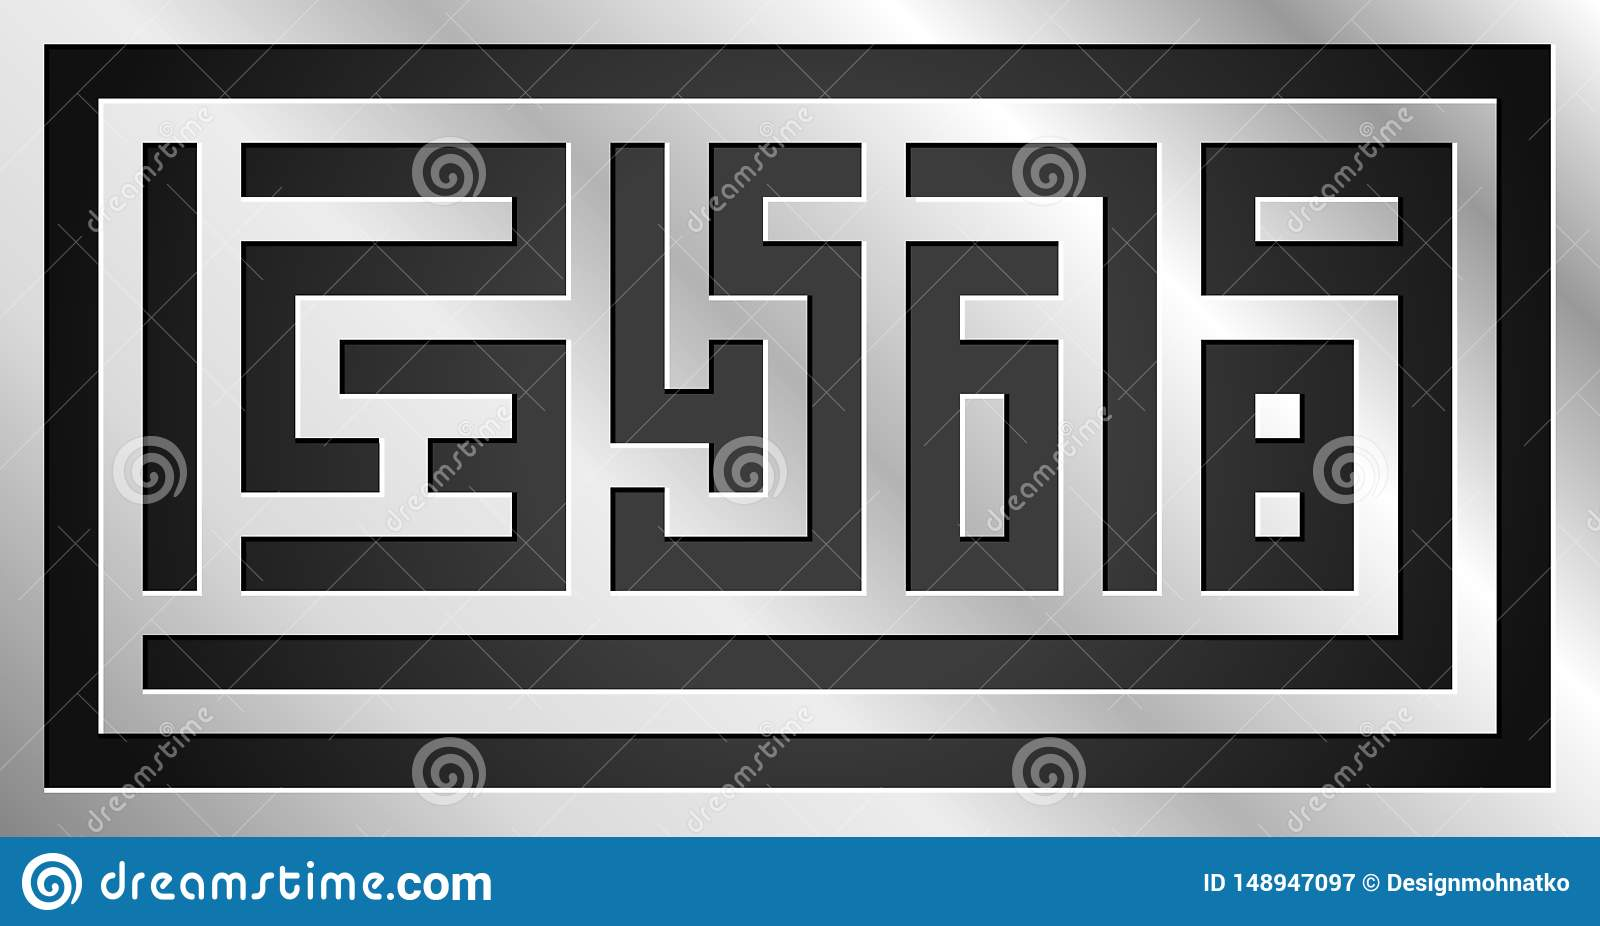 Geometric desing of numbers signs on steel background